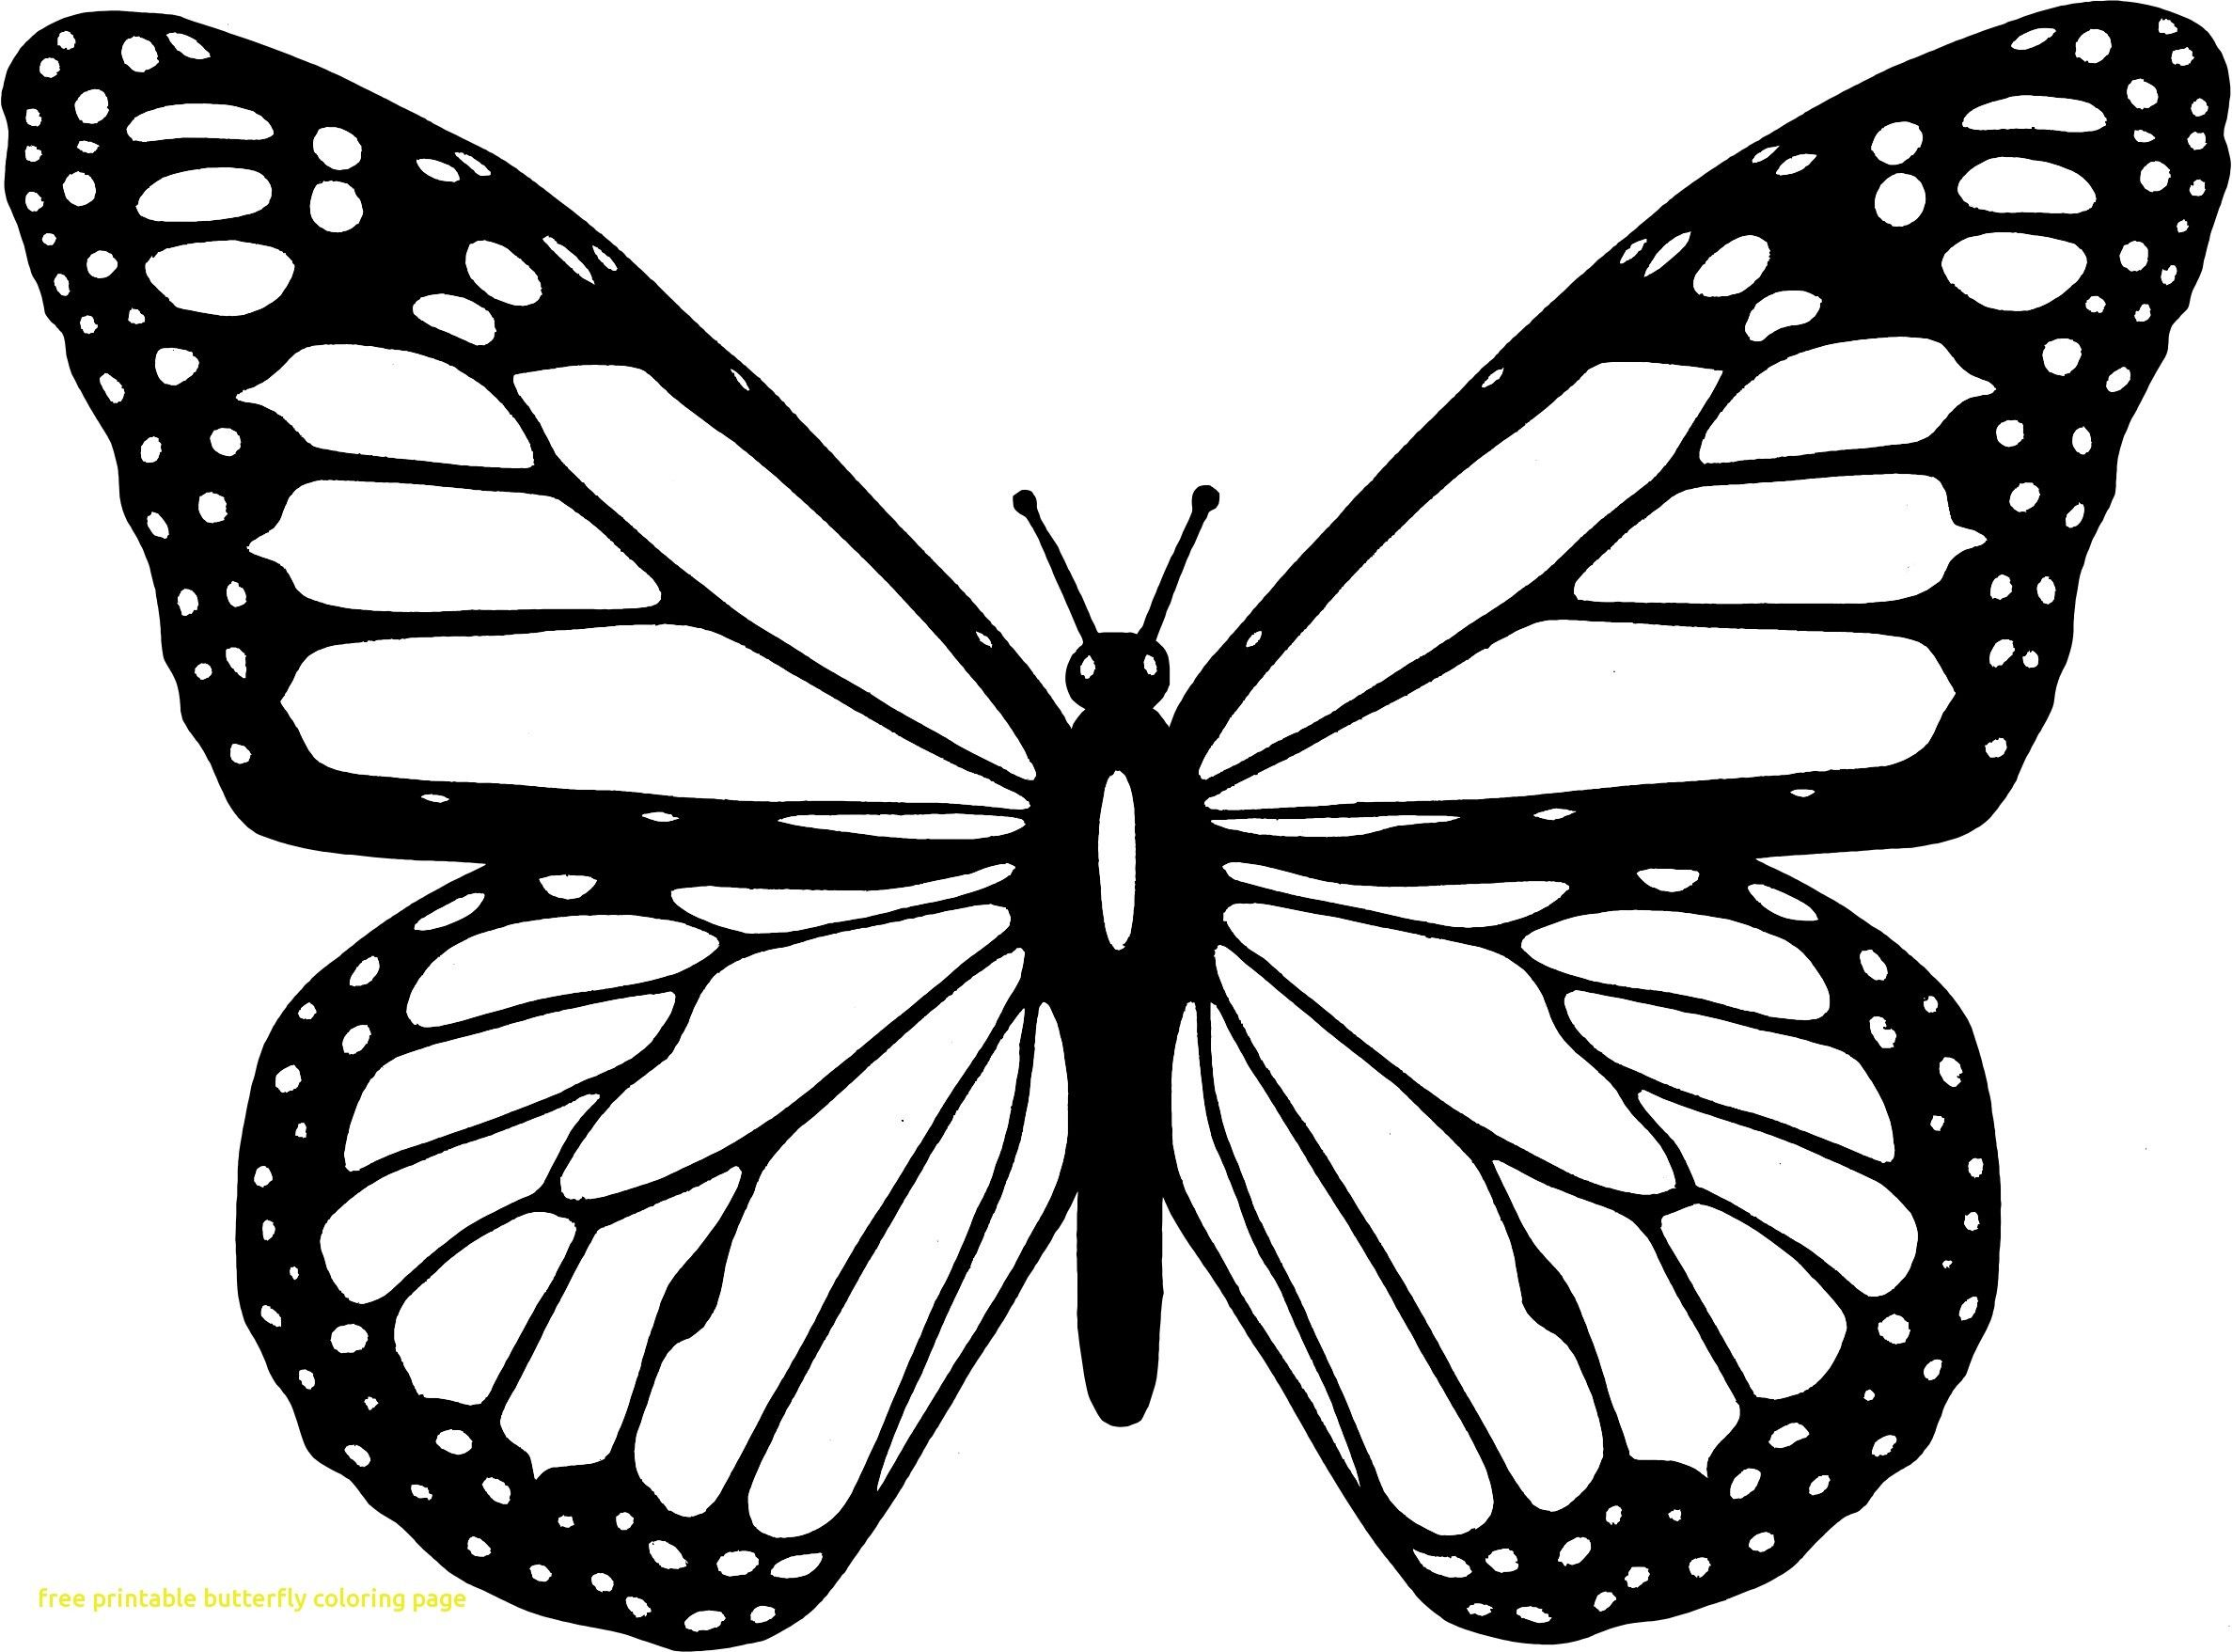 monarch butterfly coloring page coloring page of butterfly new easily colouring pages coloring monarch butterfly page